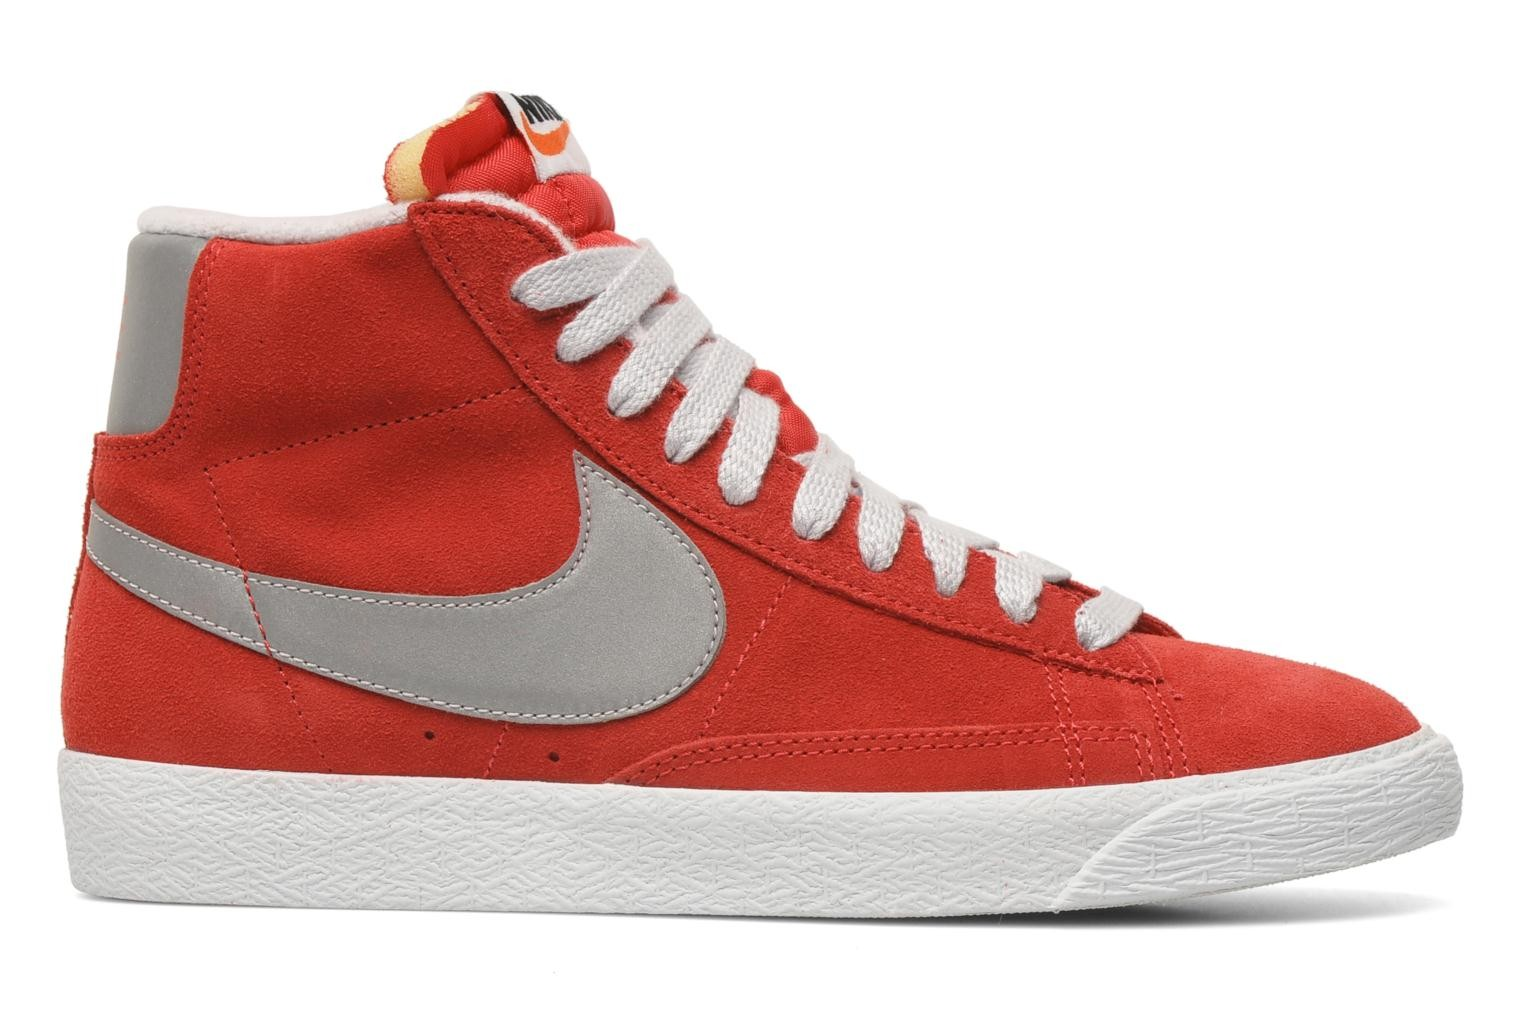 Nike Blazer Mid Prm Vintage Suede Distinct Red Reflect Silver Pure Platinium Men's Shoe